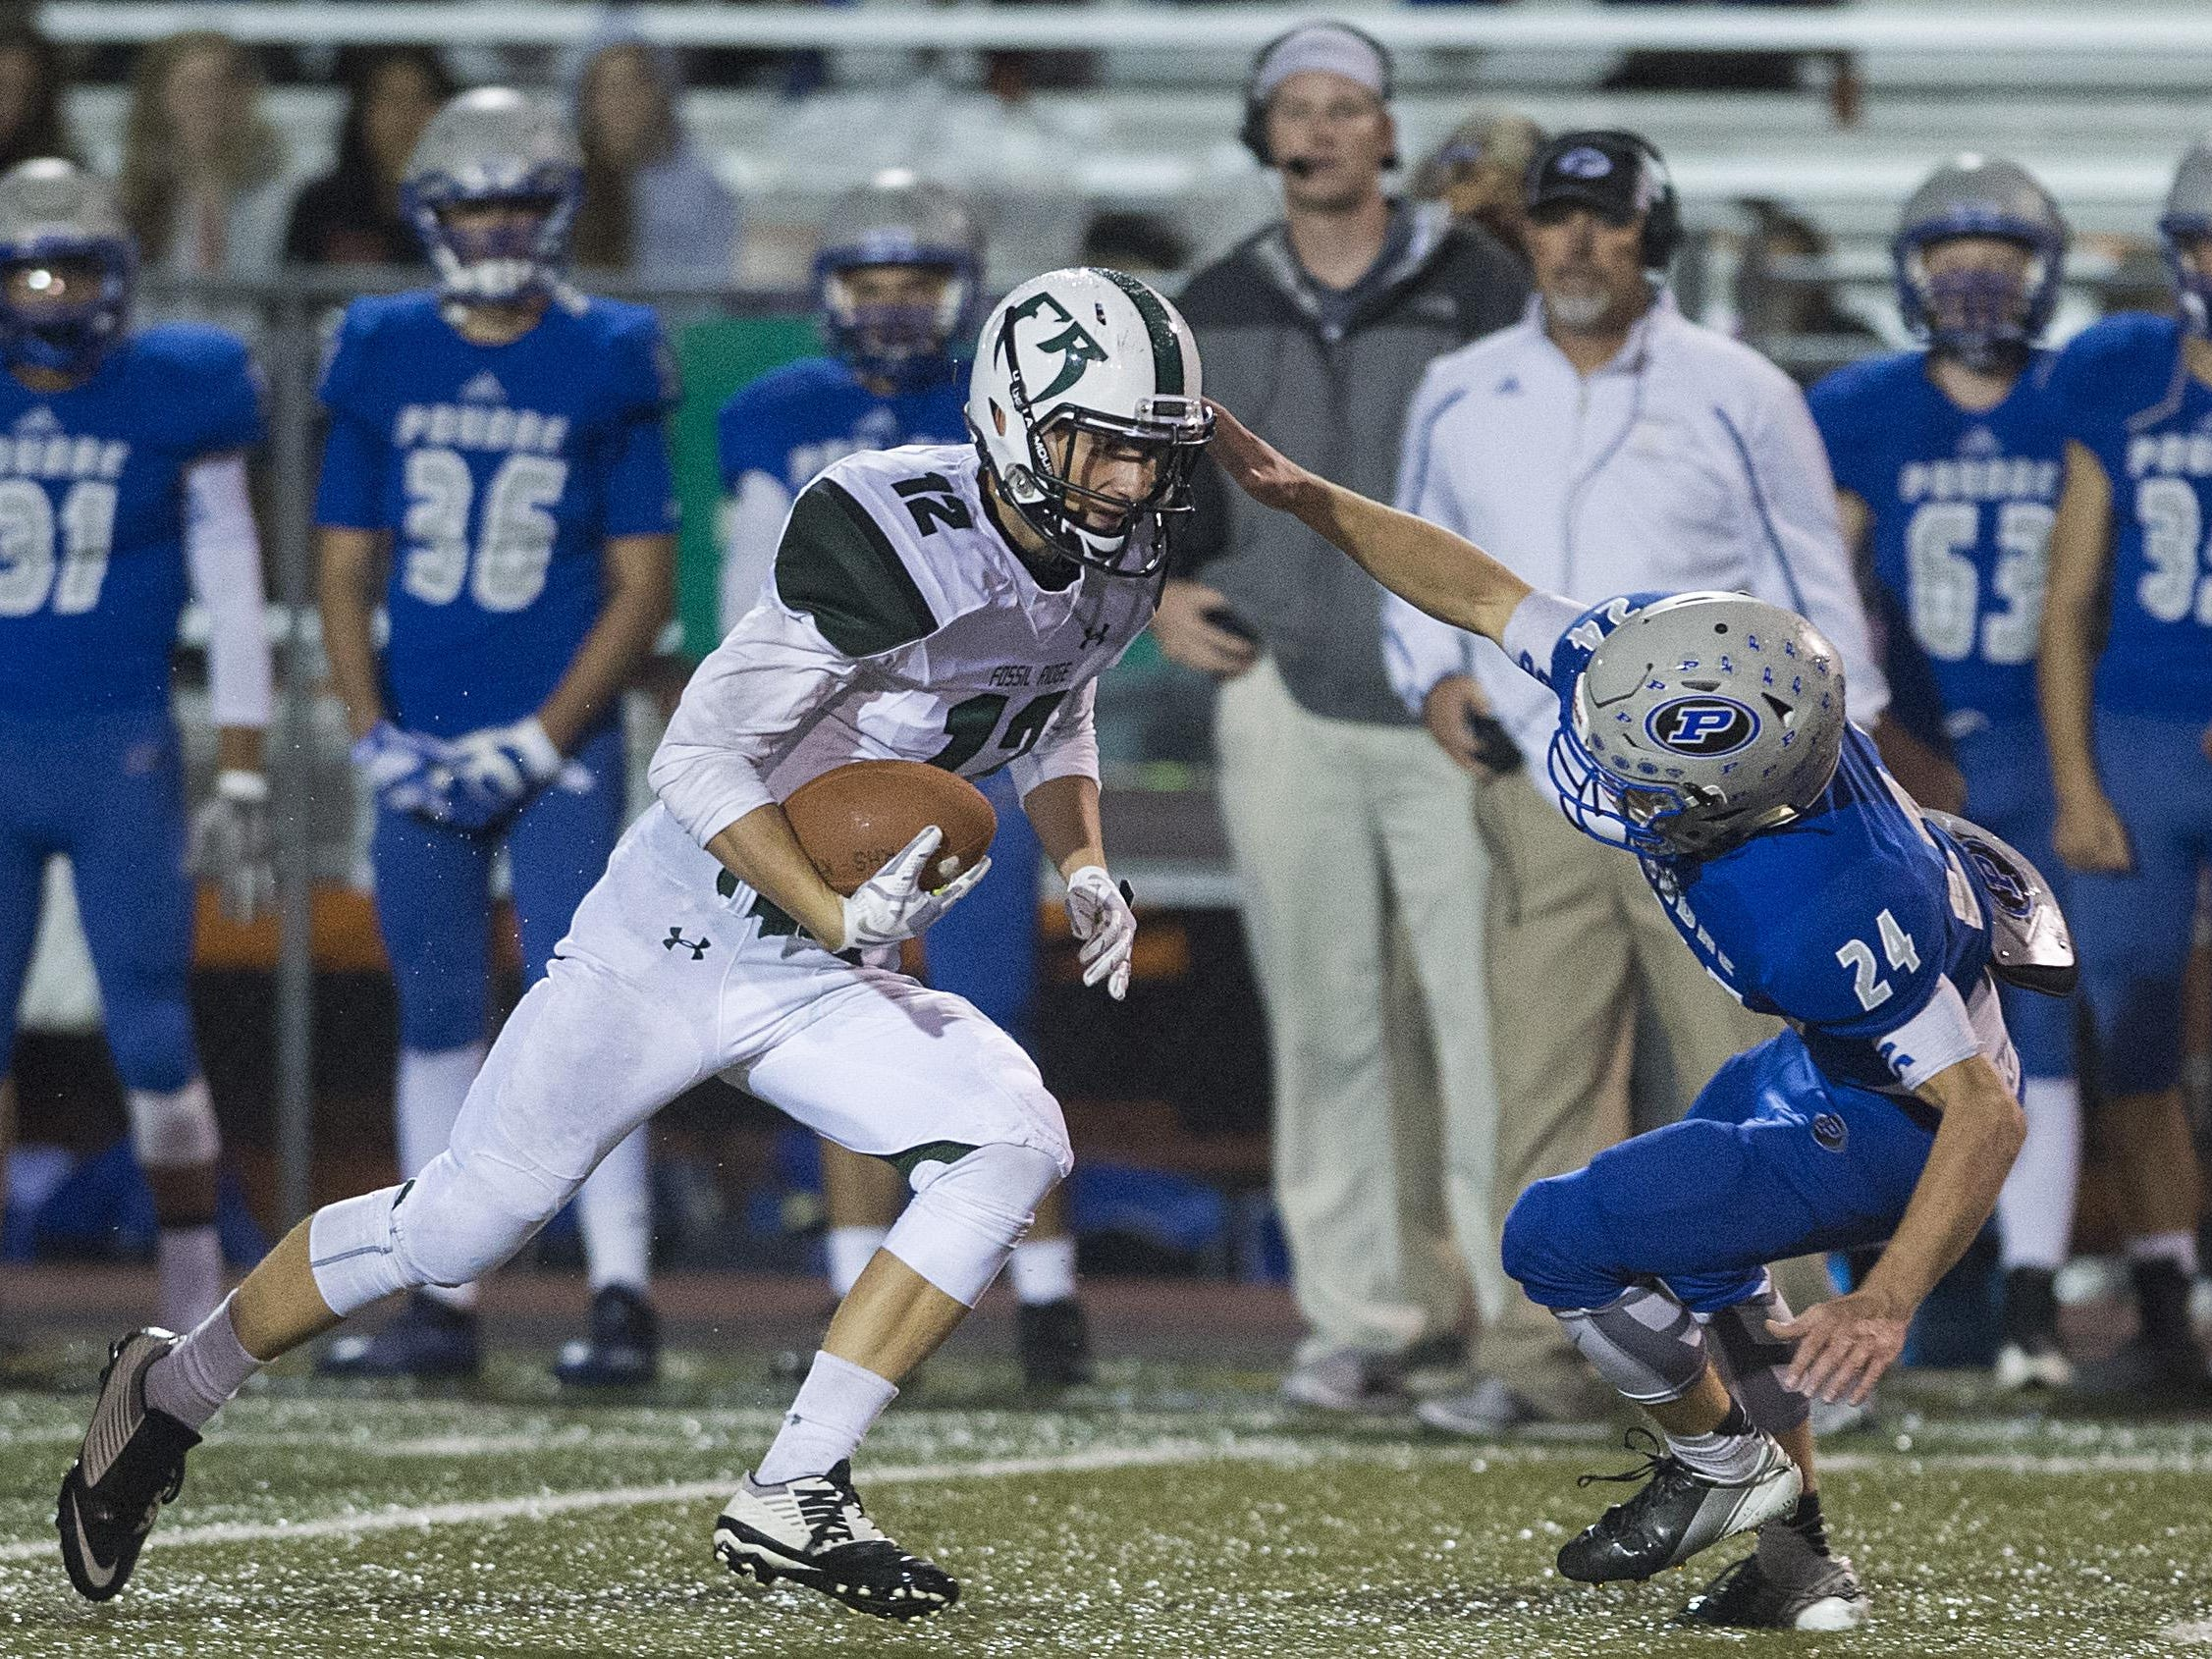 Fossil Ridge High School wide receiver Alec Mullen, left, is one of the area leaders in receiving. Poudre's Jason Wooldridge, right, is one of the top locals in interceptions.